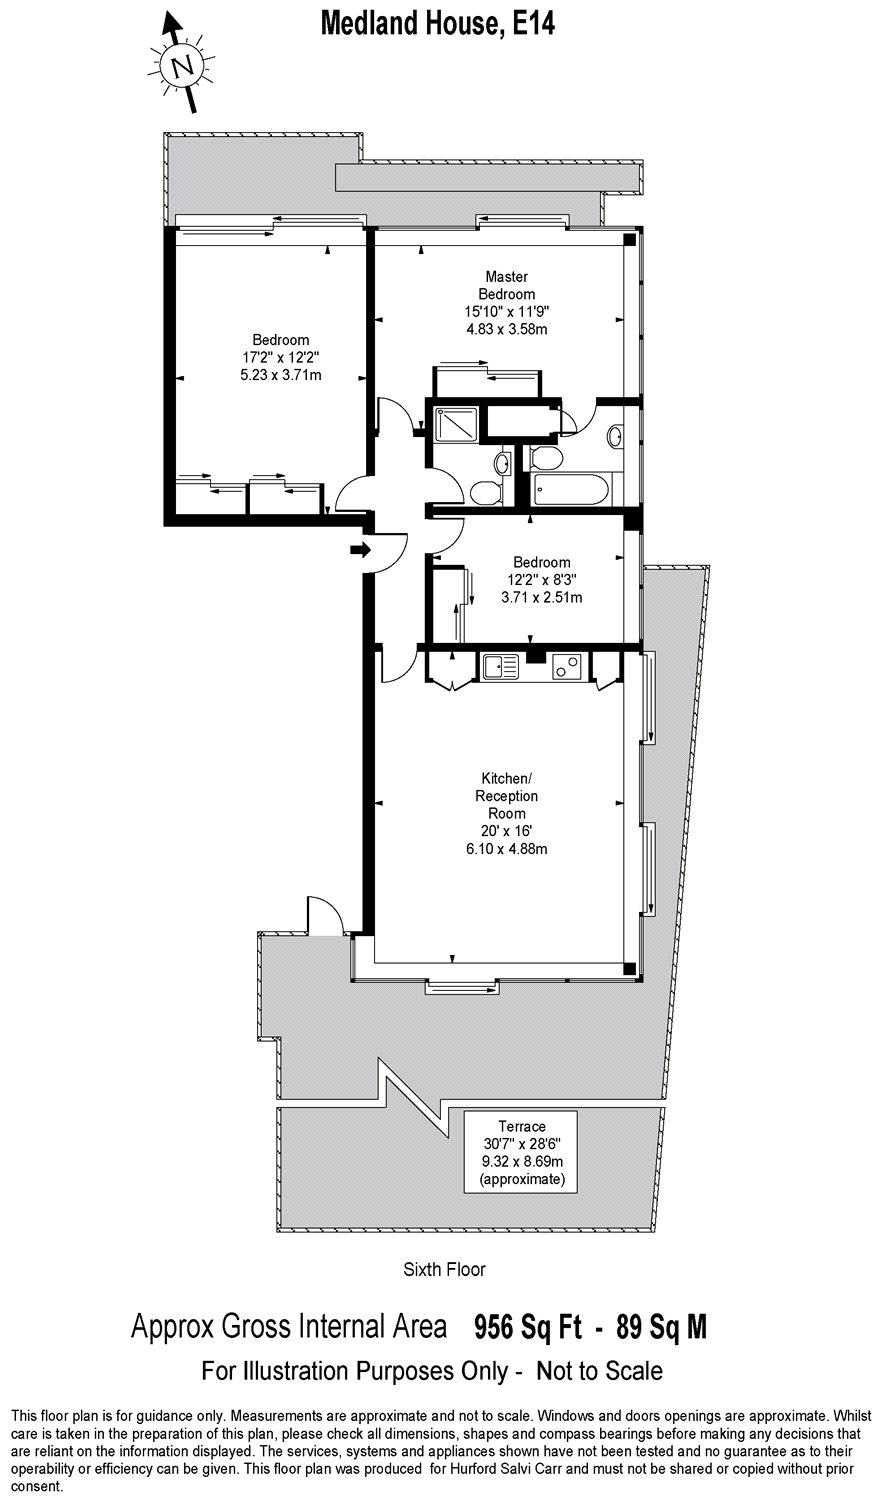 Medland House, 11 Branch Road, Limehouse, E14 floorplan